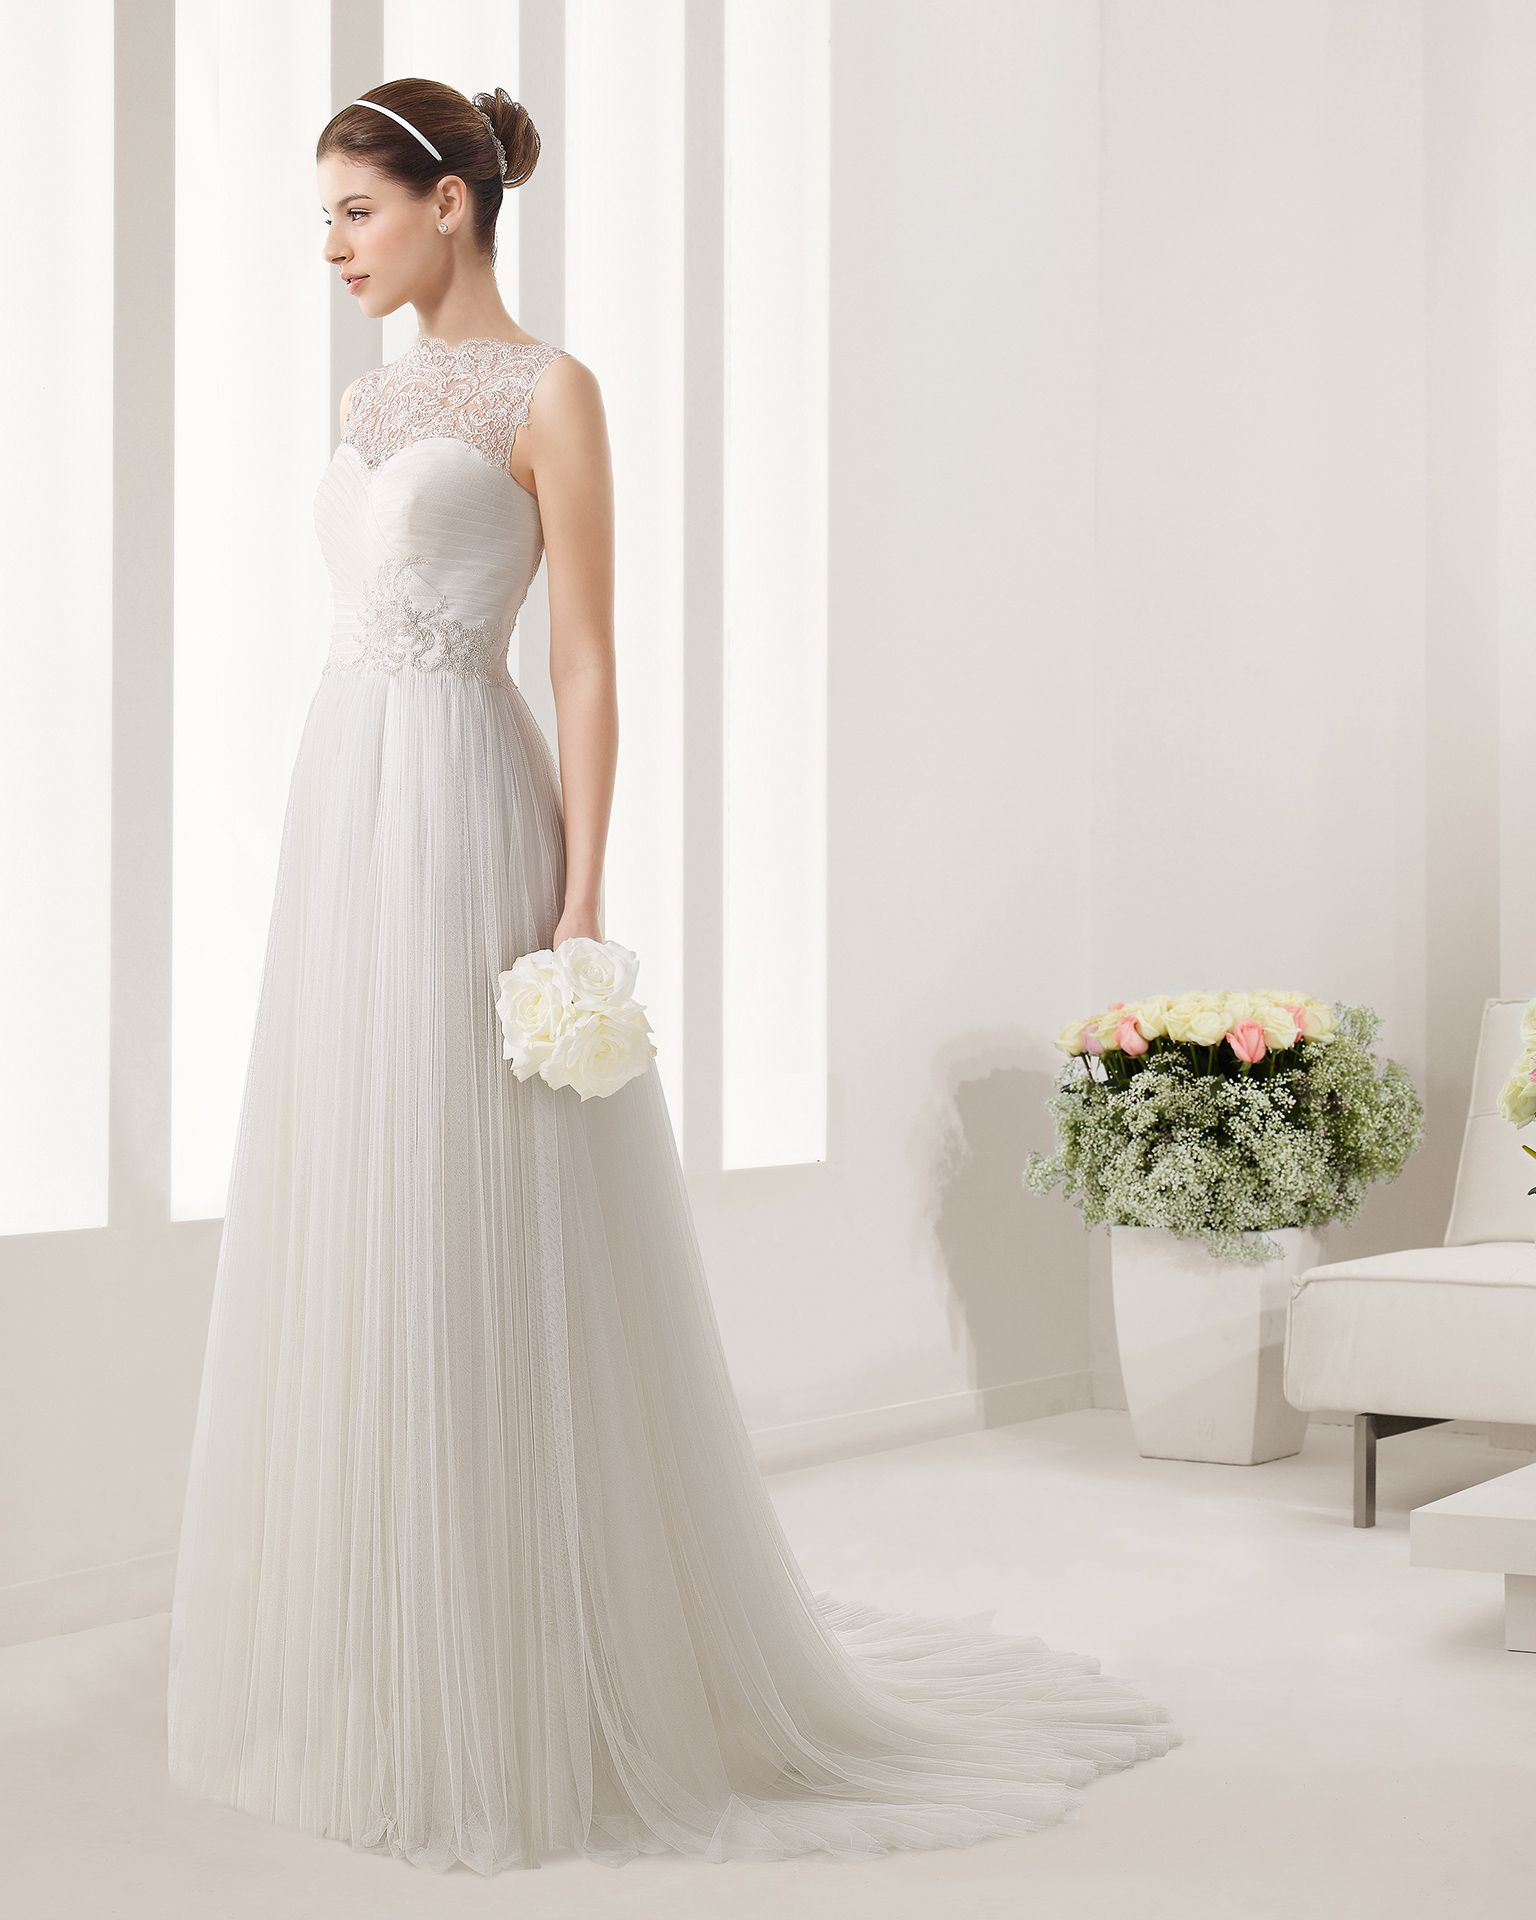 Couture Wedding Gowns Sydney: 2015 Collection